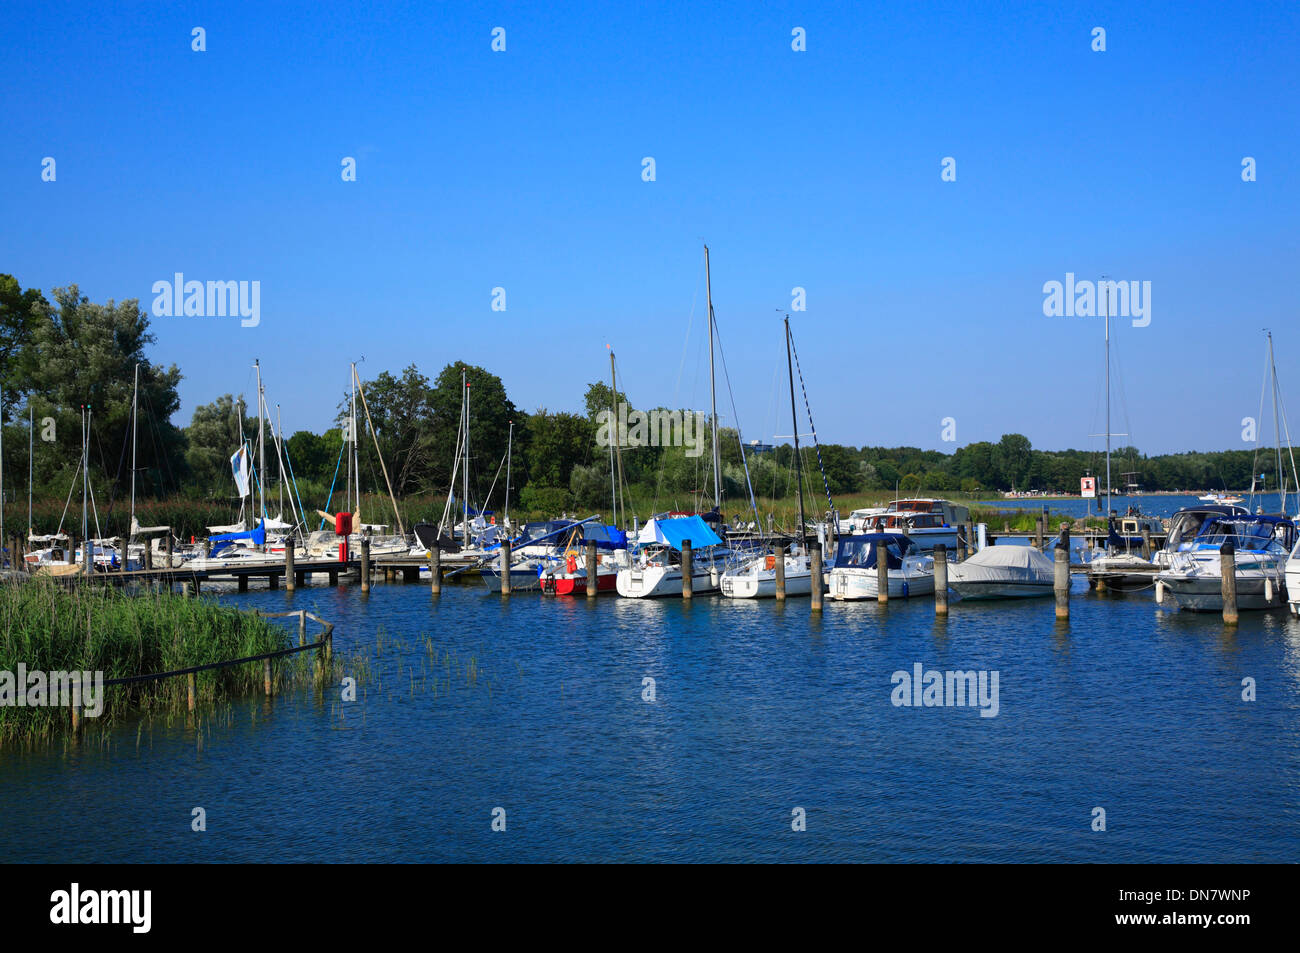 Marina at Castle Klink near  Waren, Lake  Mueritz, Mecklenburg Lakes, Mecklenburg Western Pomerania, Germany, Europe - Stock Image